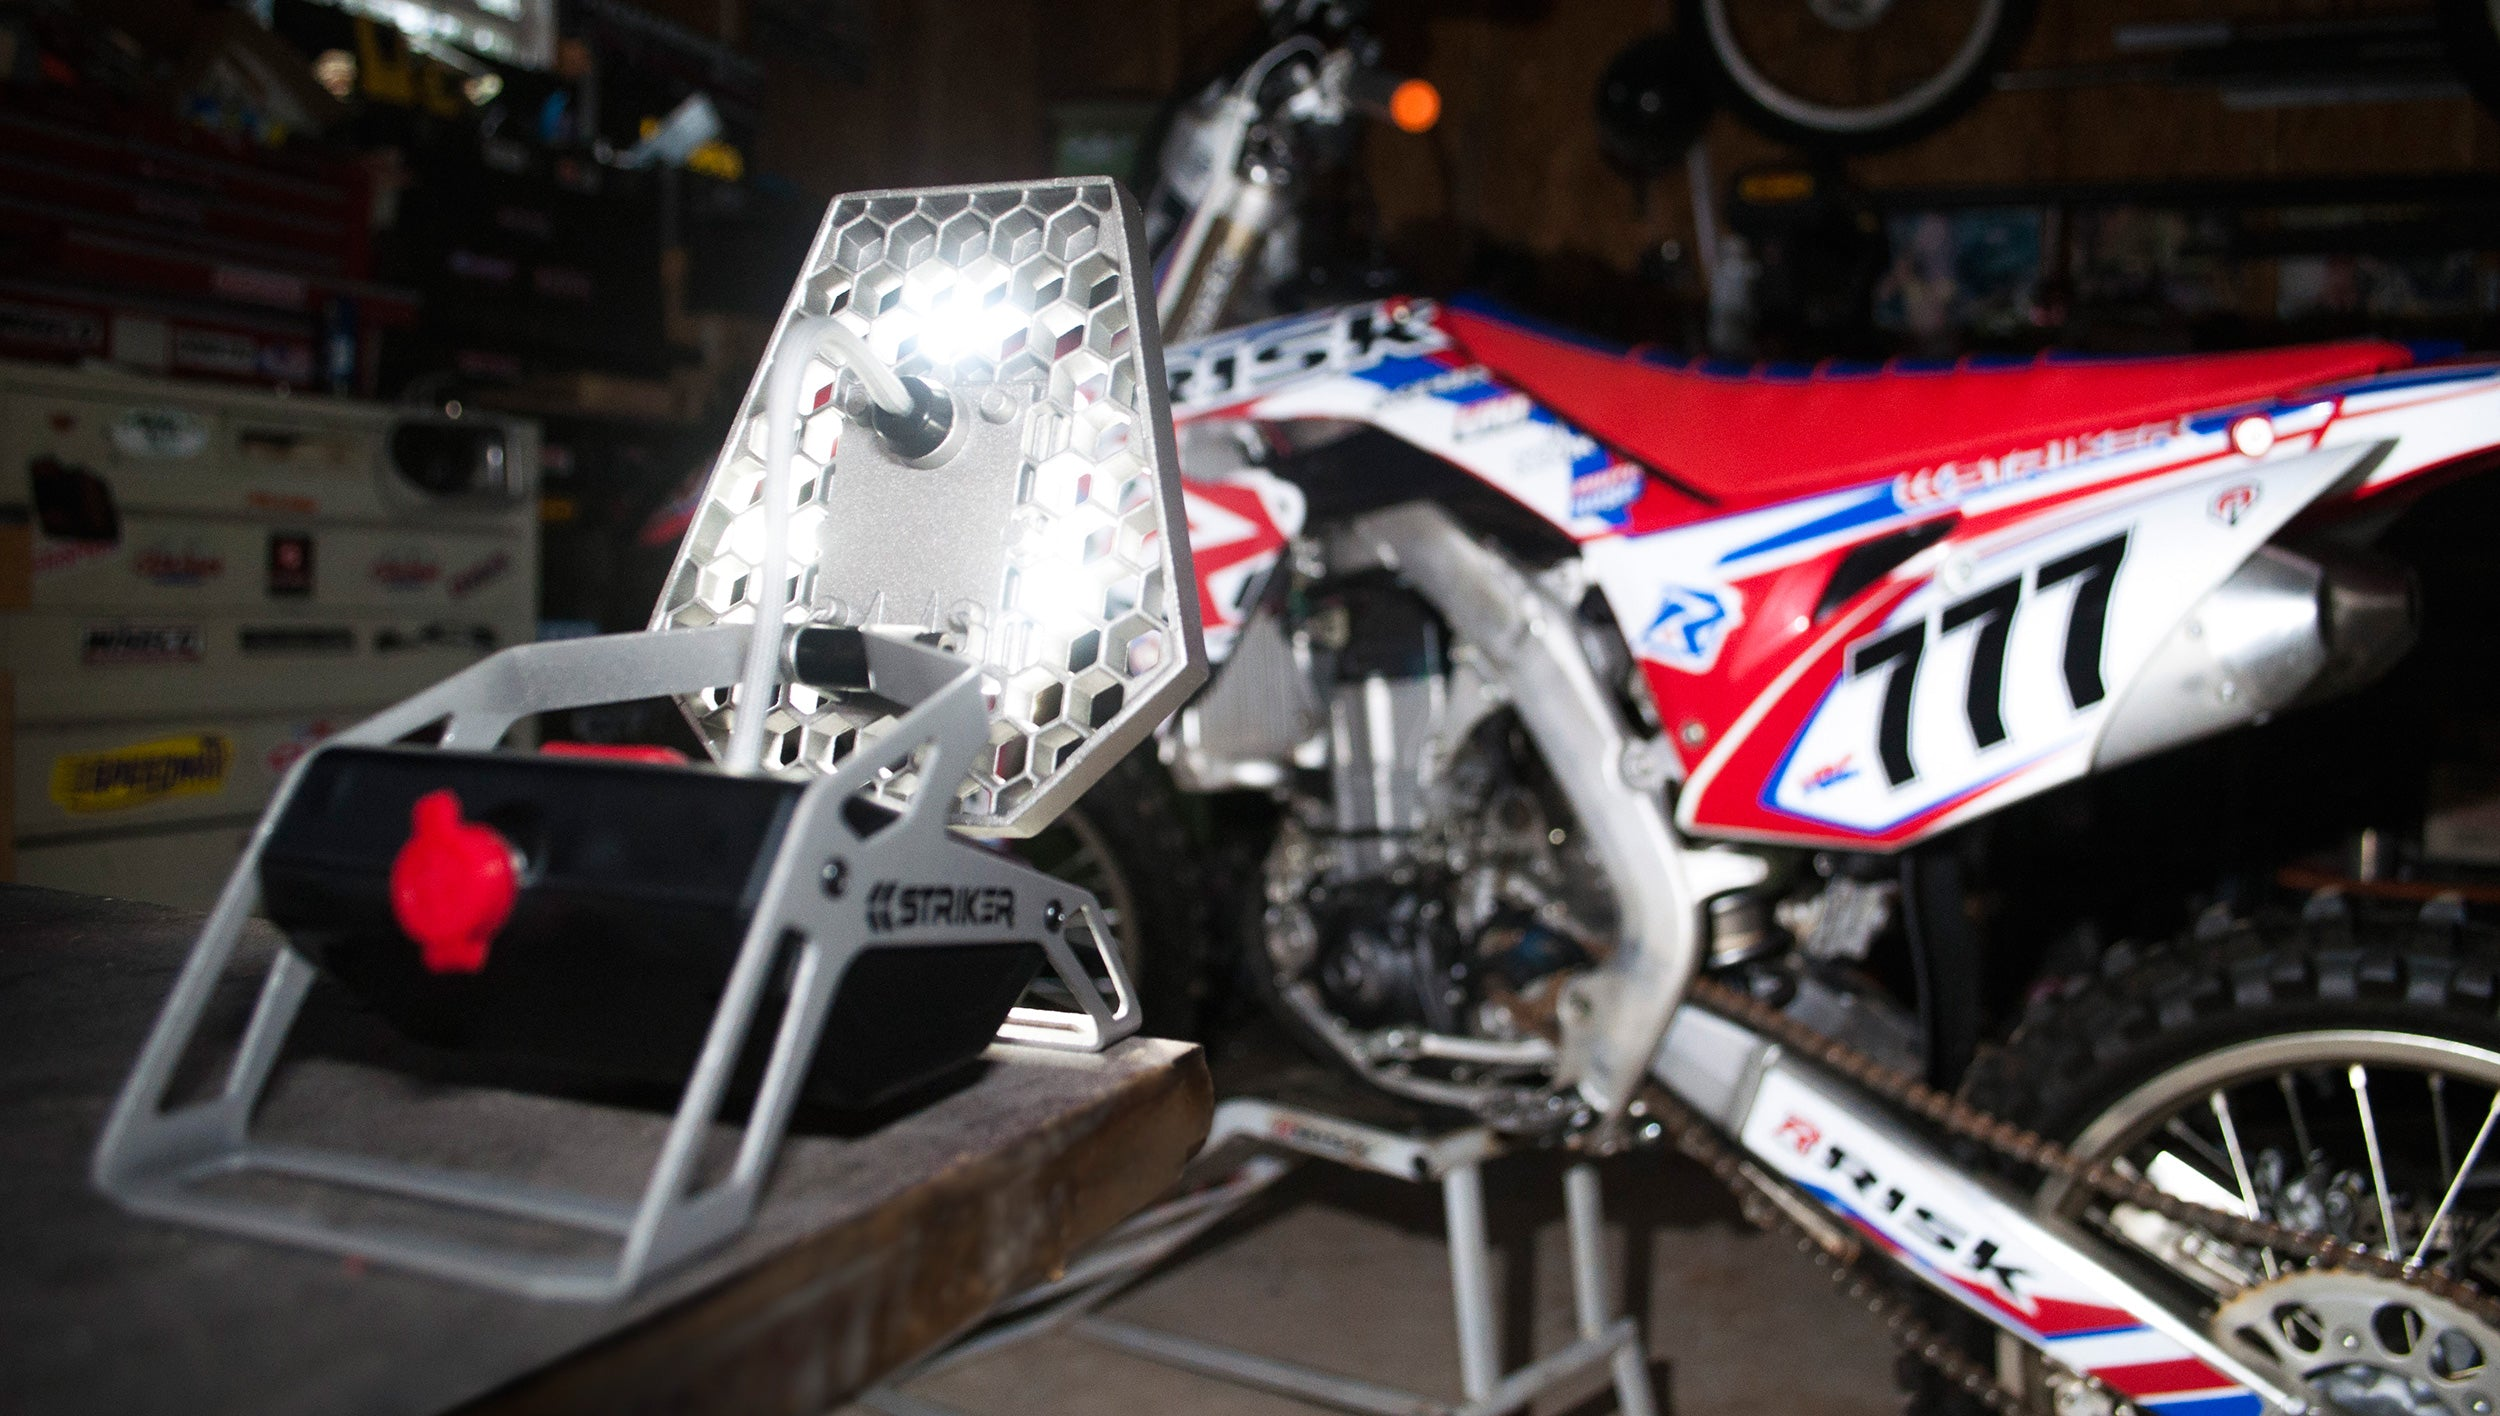 Striker ROVER for working on MX Bike